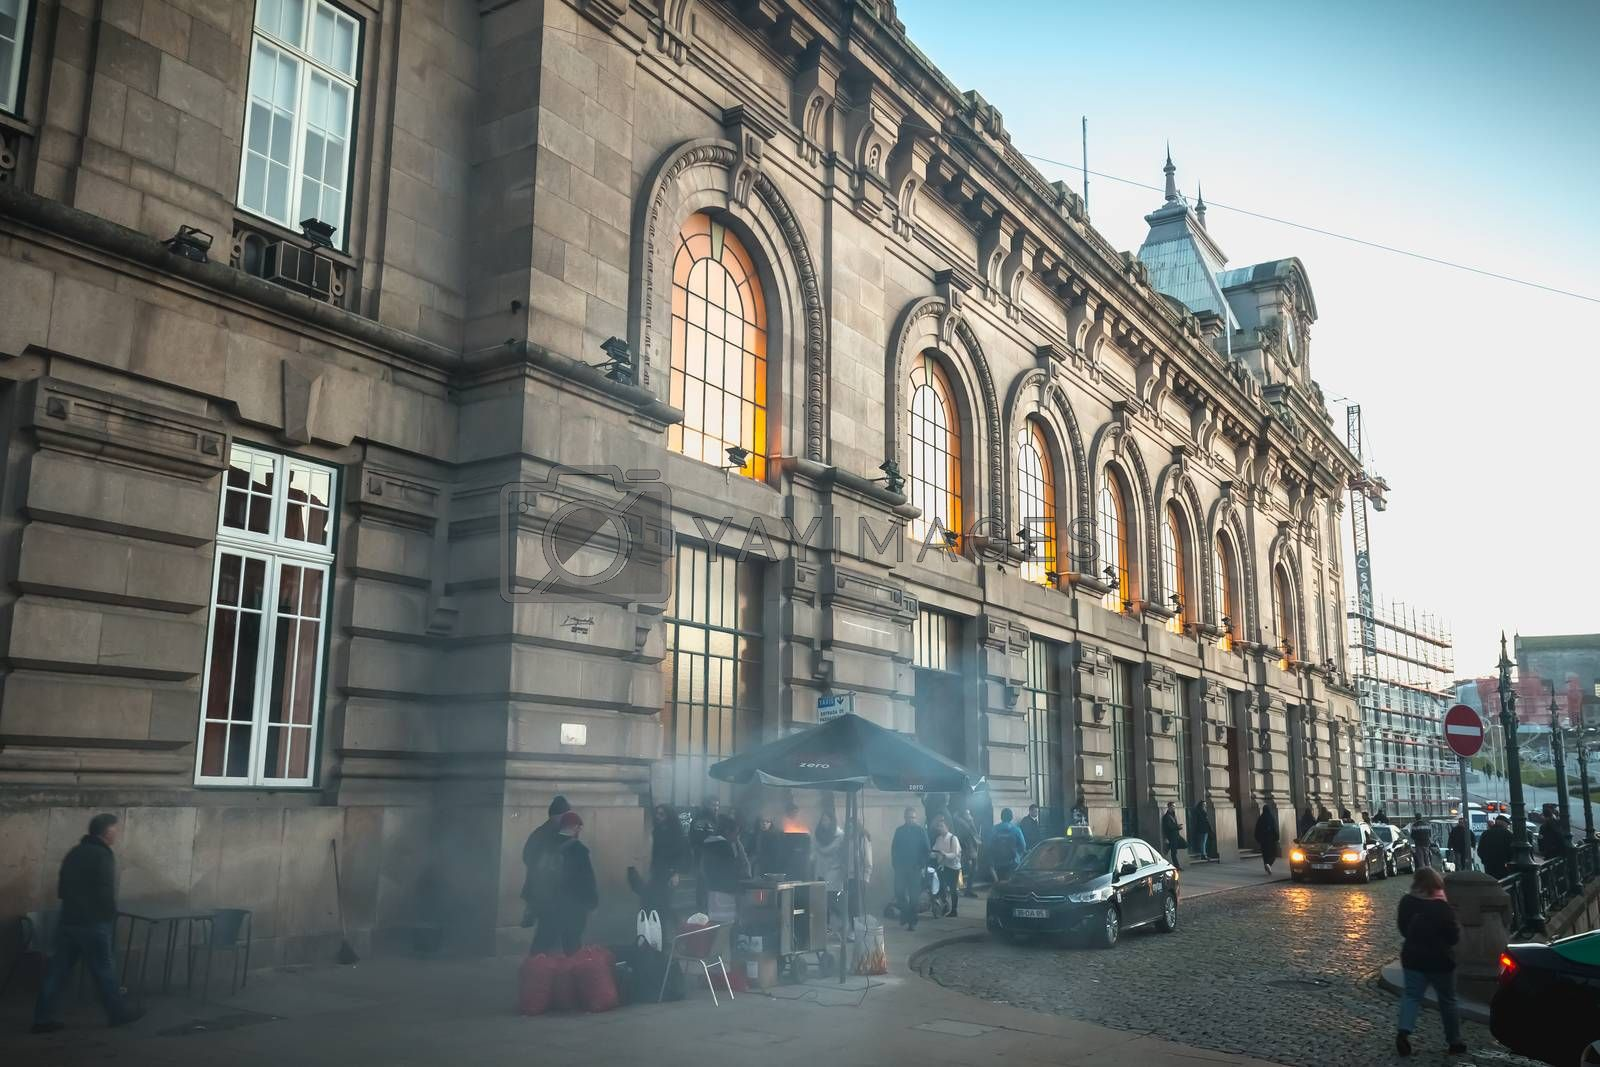 Porto, Portugal - November 30, 2018: Street atmosphere in front of the Porto train station where people walk one autumn evening